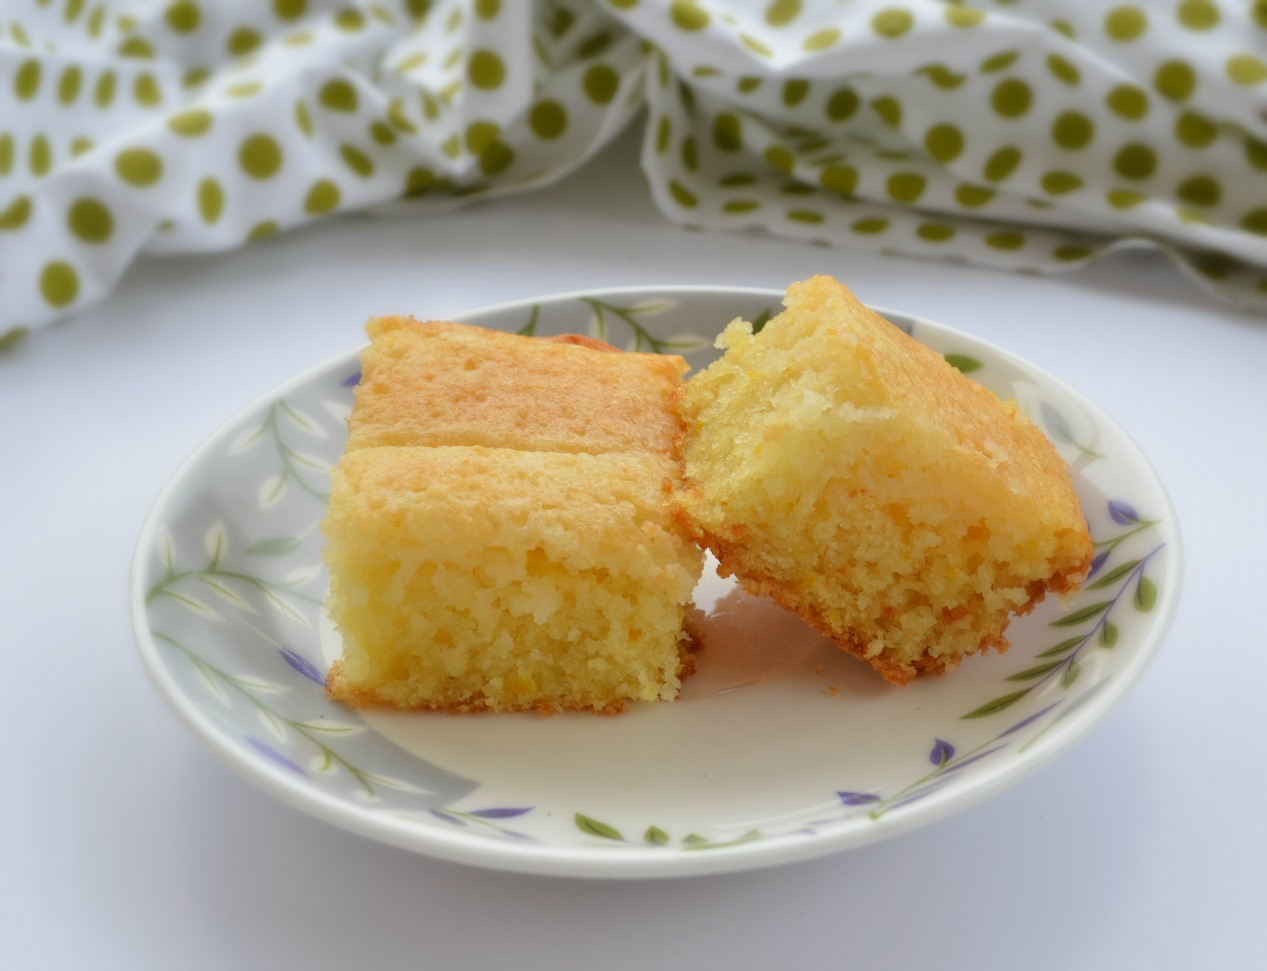 Jyoti S Pages Eggless Lemon Drizzle Cake Recipe How To Bake